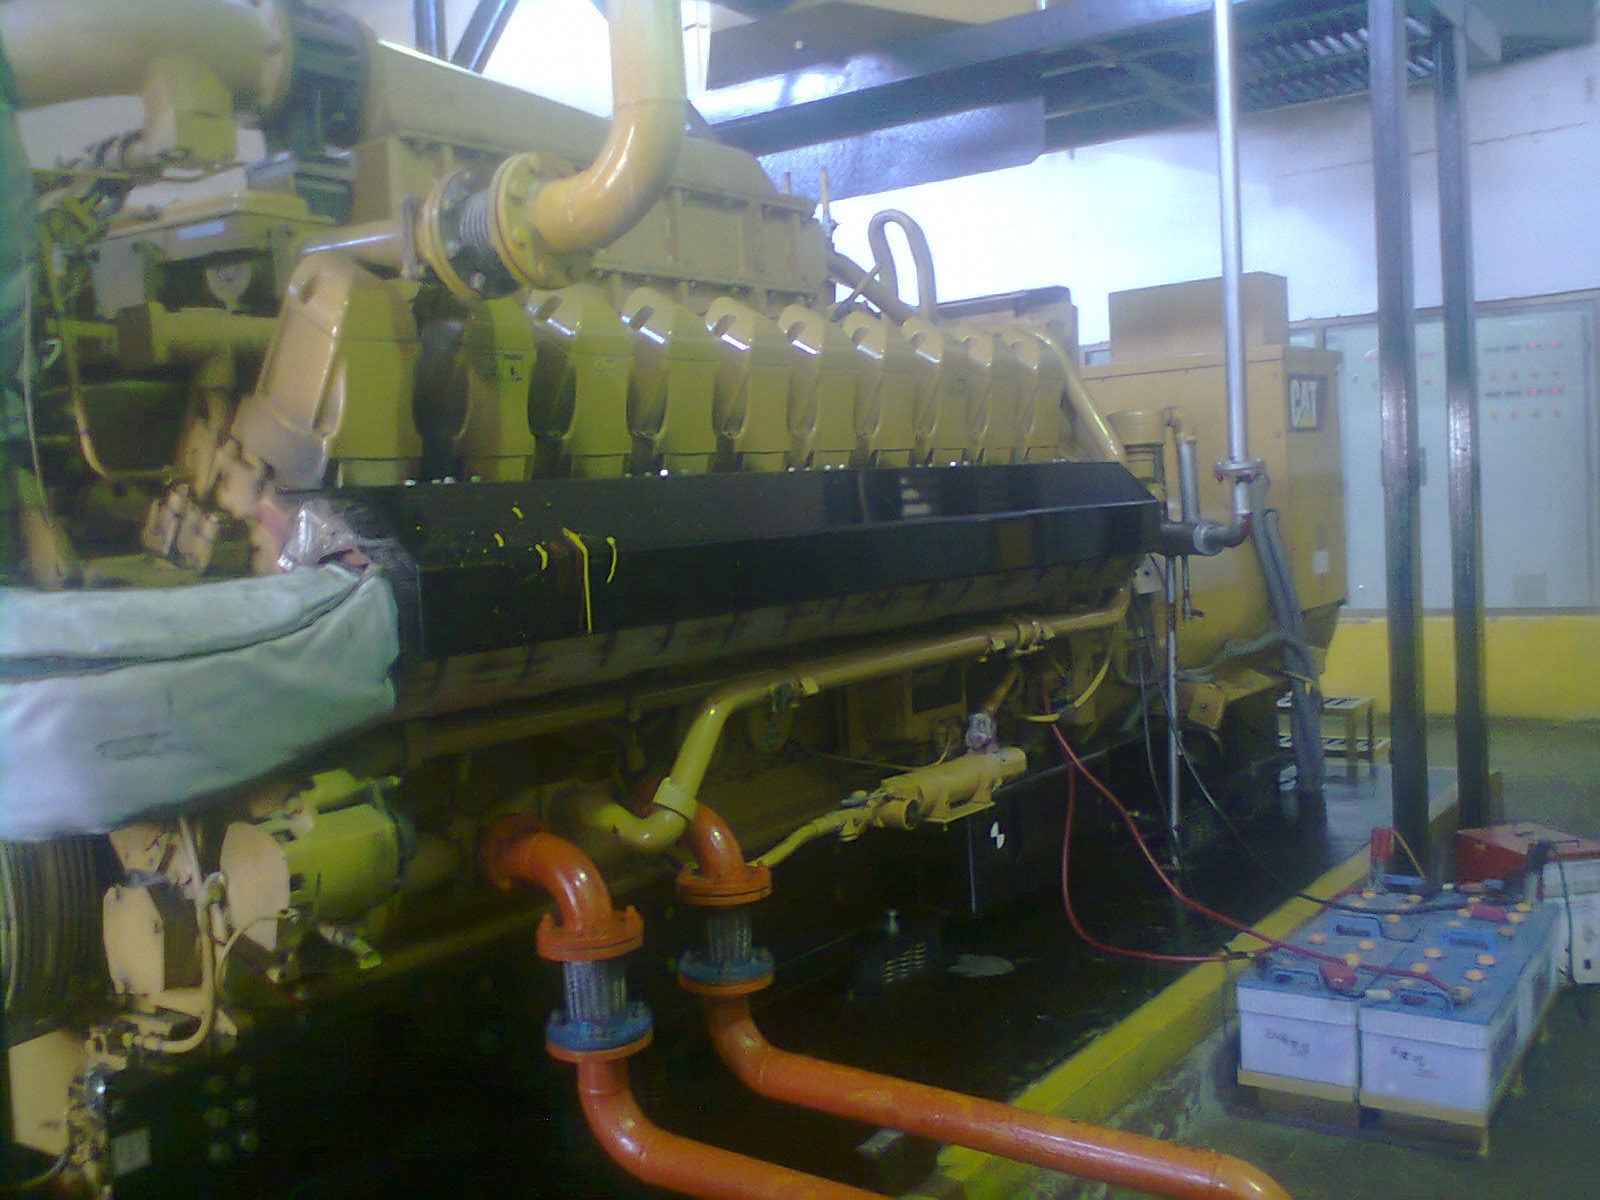 CATERPILLAR GAS GENERATOR CAT 3520C Hanif s Trading Co